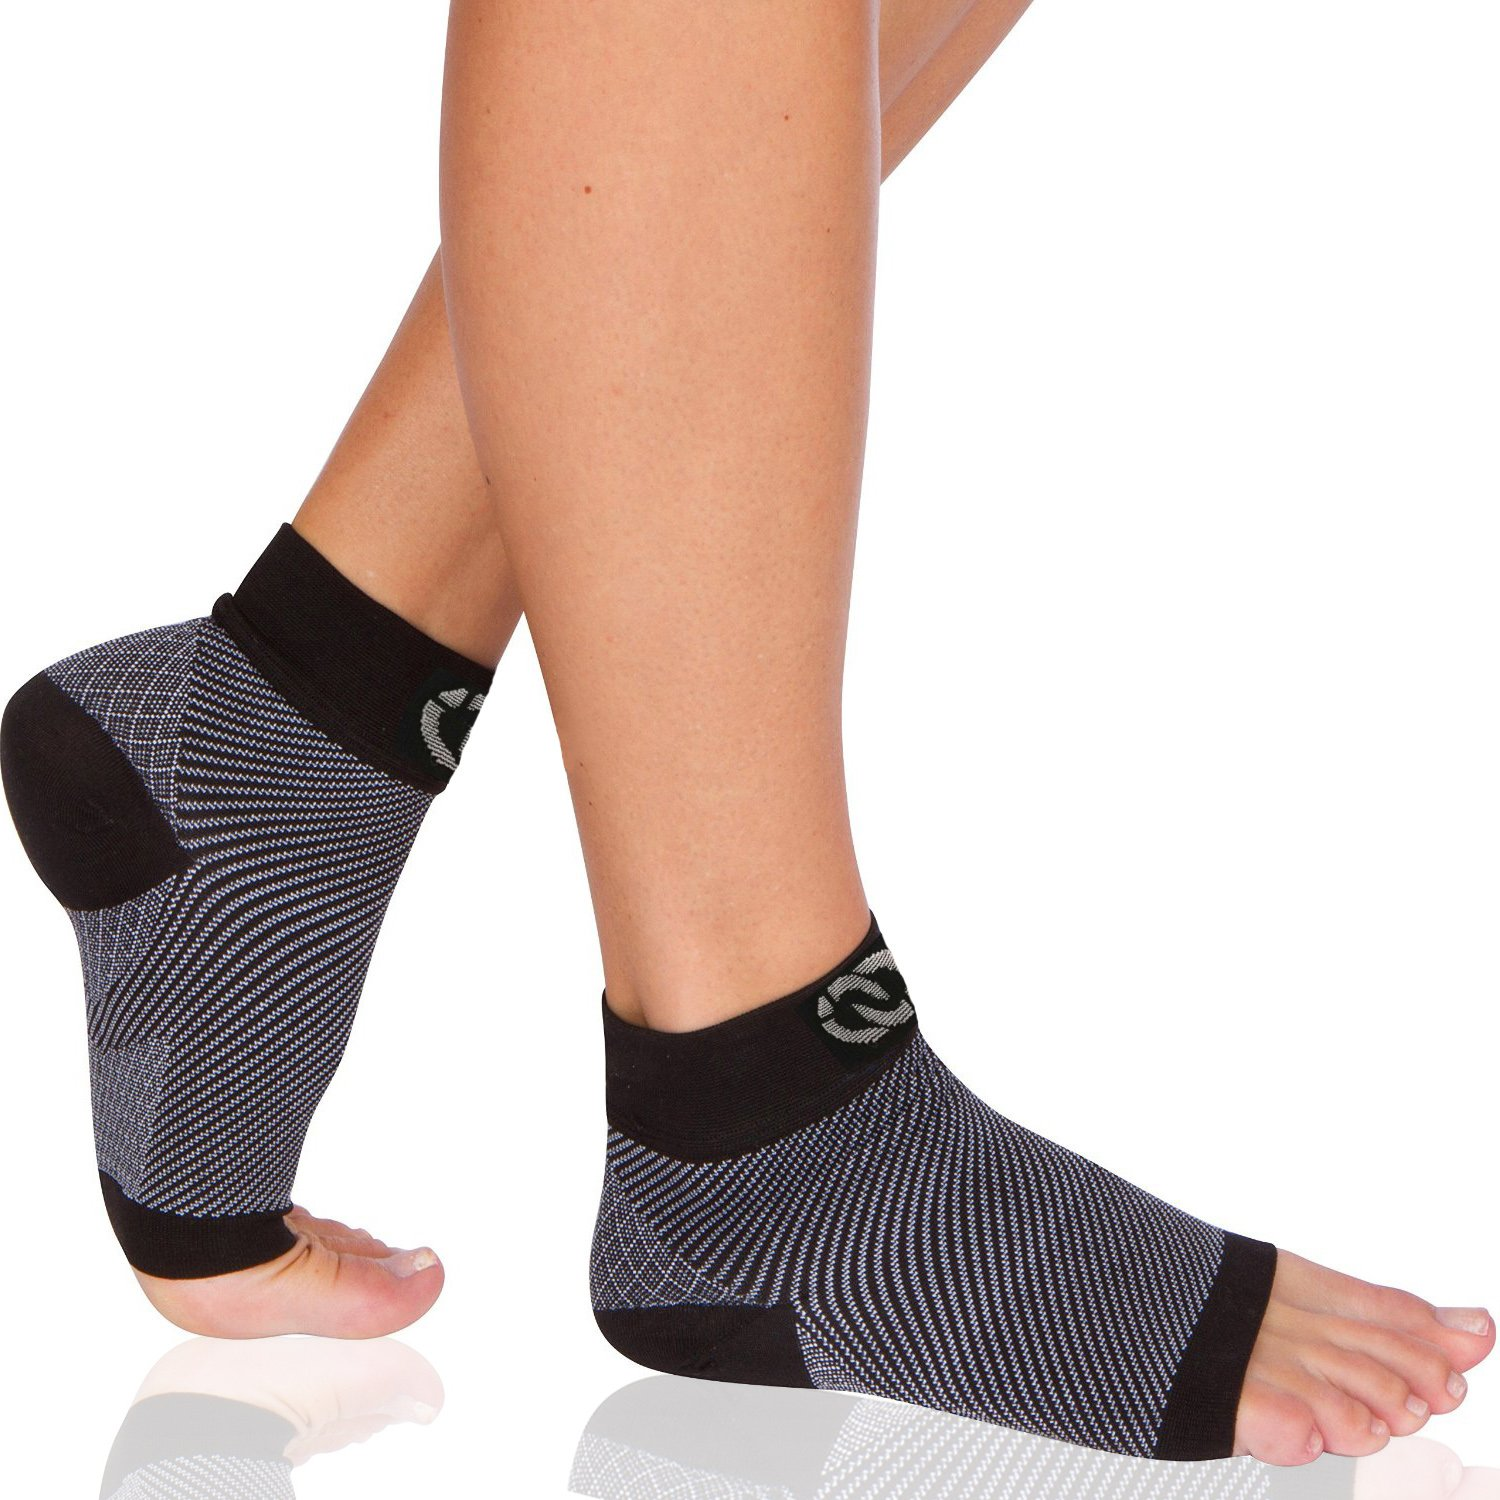 Compressions Plantar Fasciitis Socks (1 Pair) Foot Sleeves with Arch & Heel Support Treatment for Men & Women - Best to Brace Insoles for Relief (Medium) by Compressions